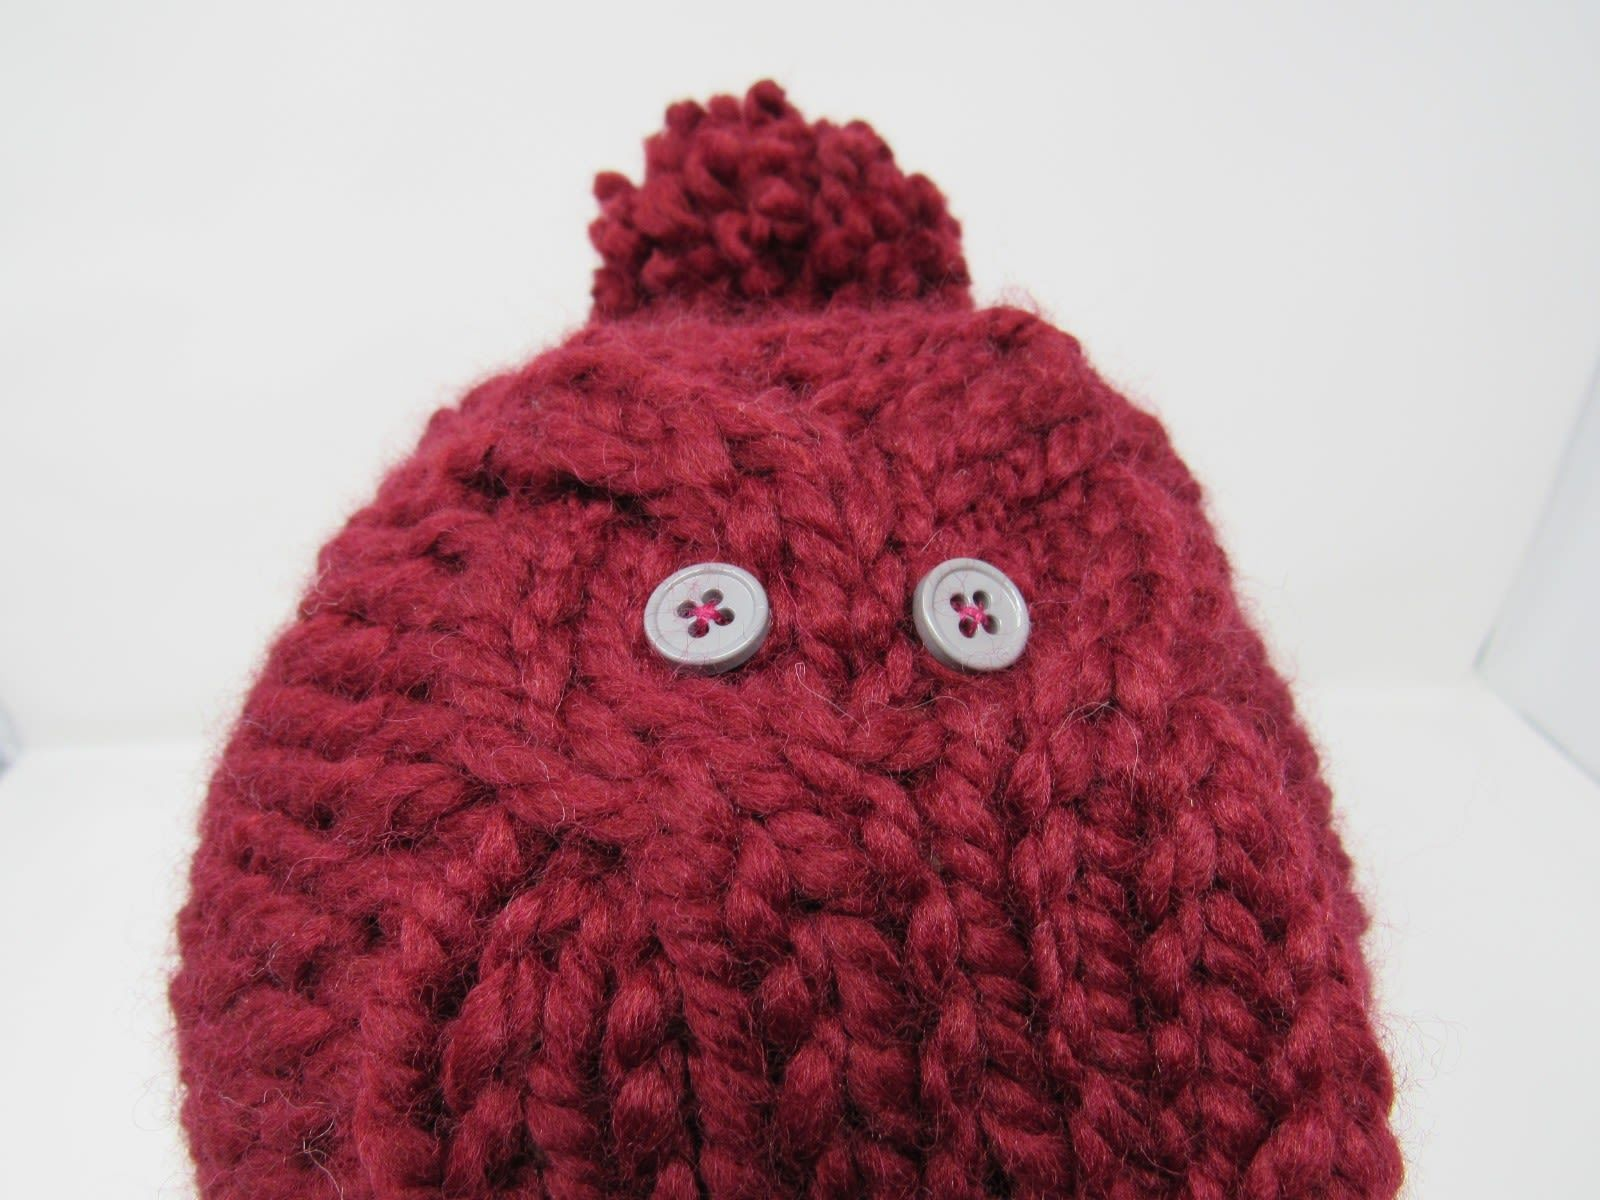 Handcrafted Knitted Hat Beanie Cranberry Acrylic/Wool Owl Pom Pom Female Adult